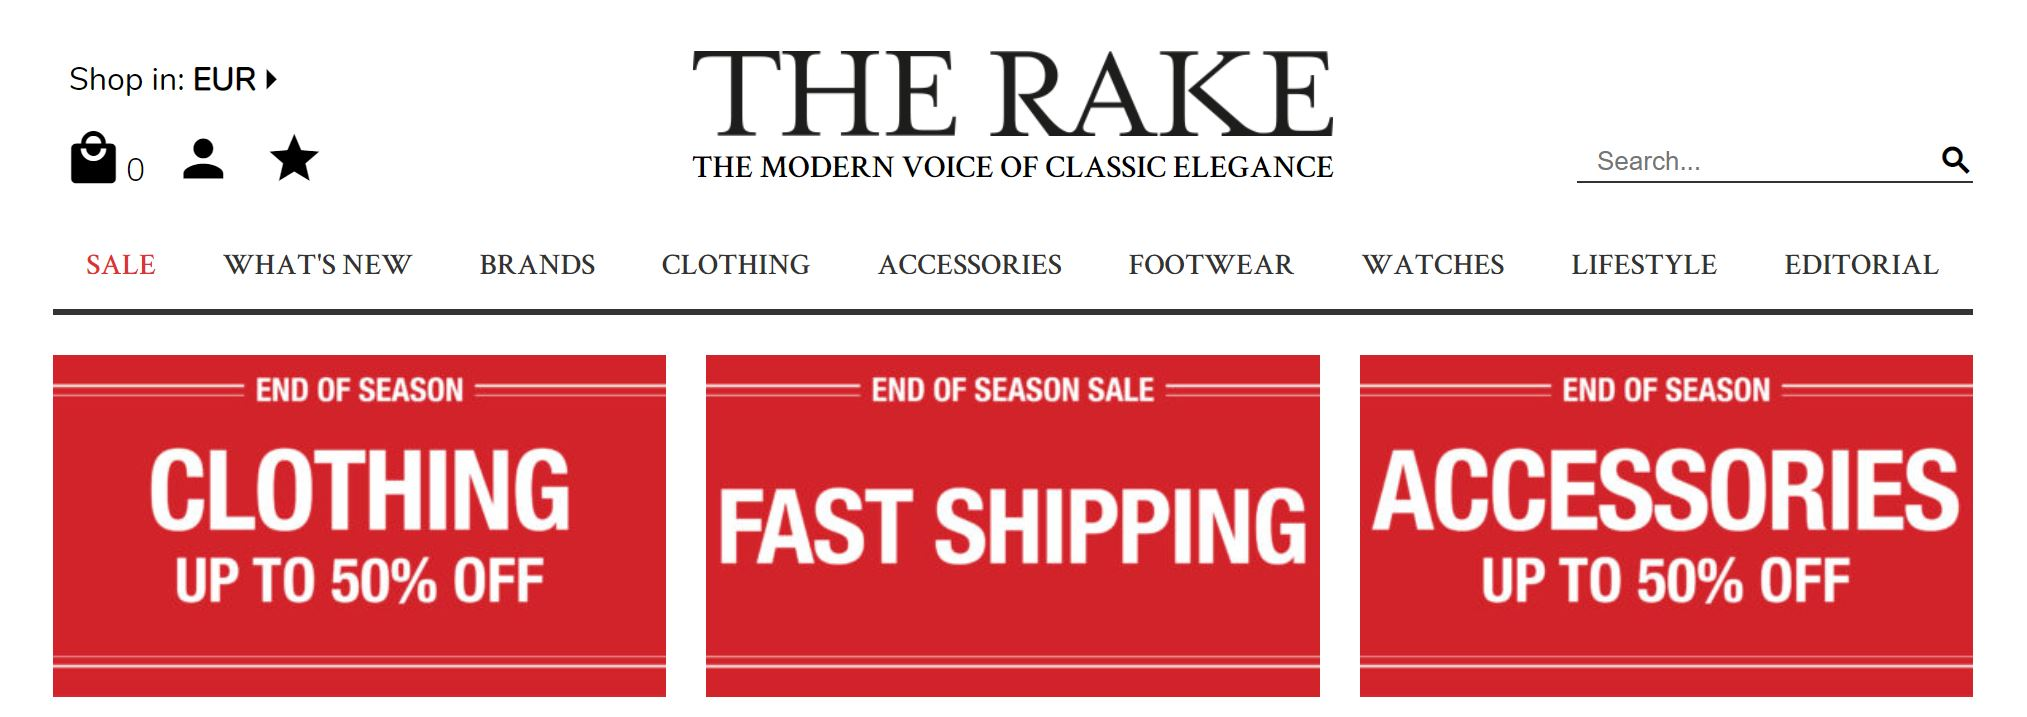 Men's Summer Sales 2019 - The Rake